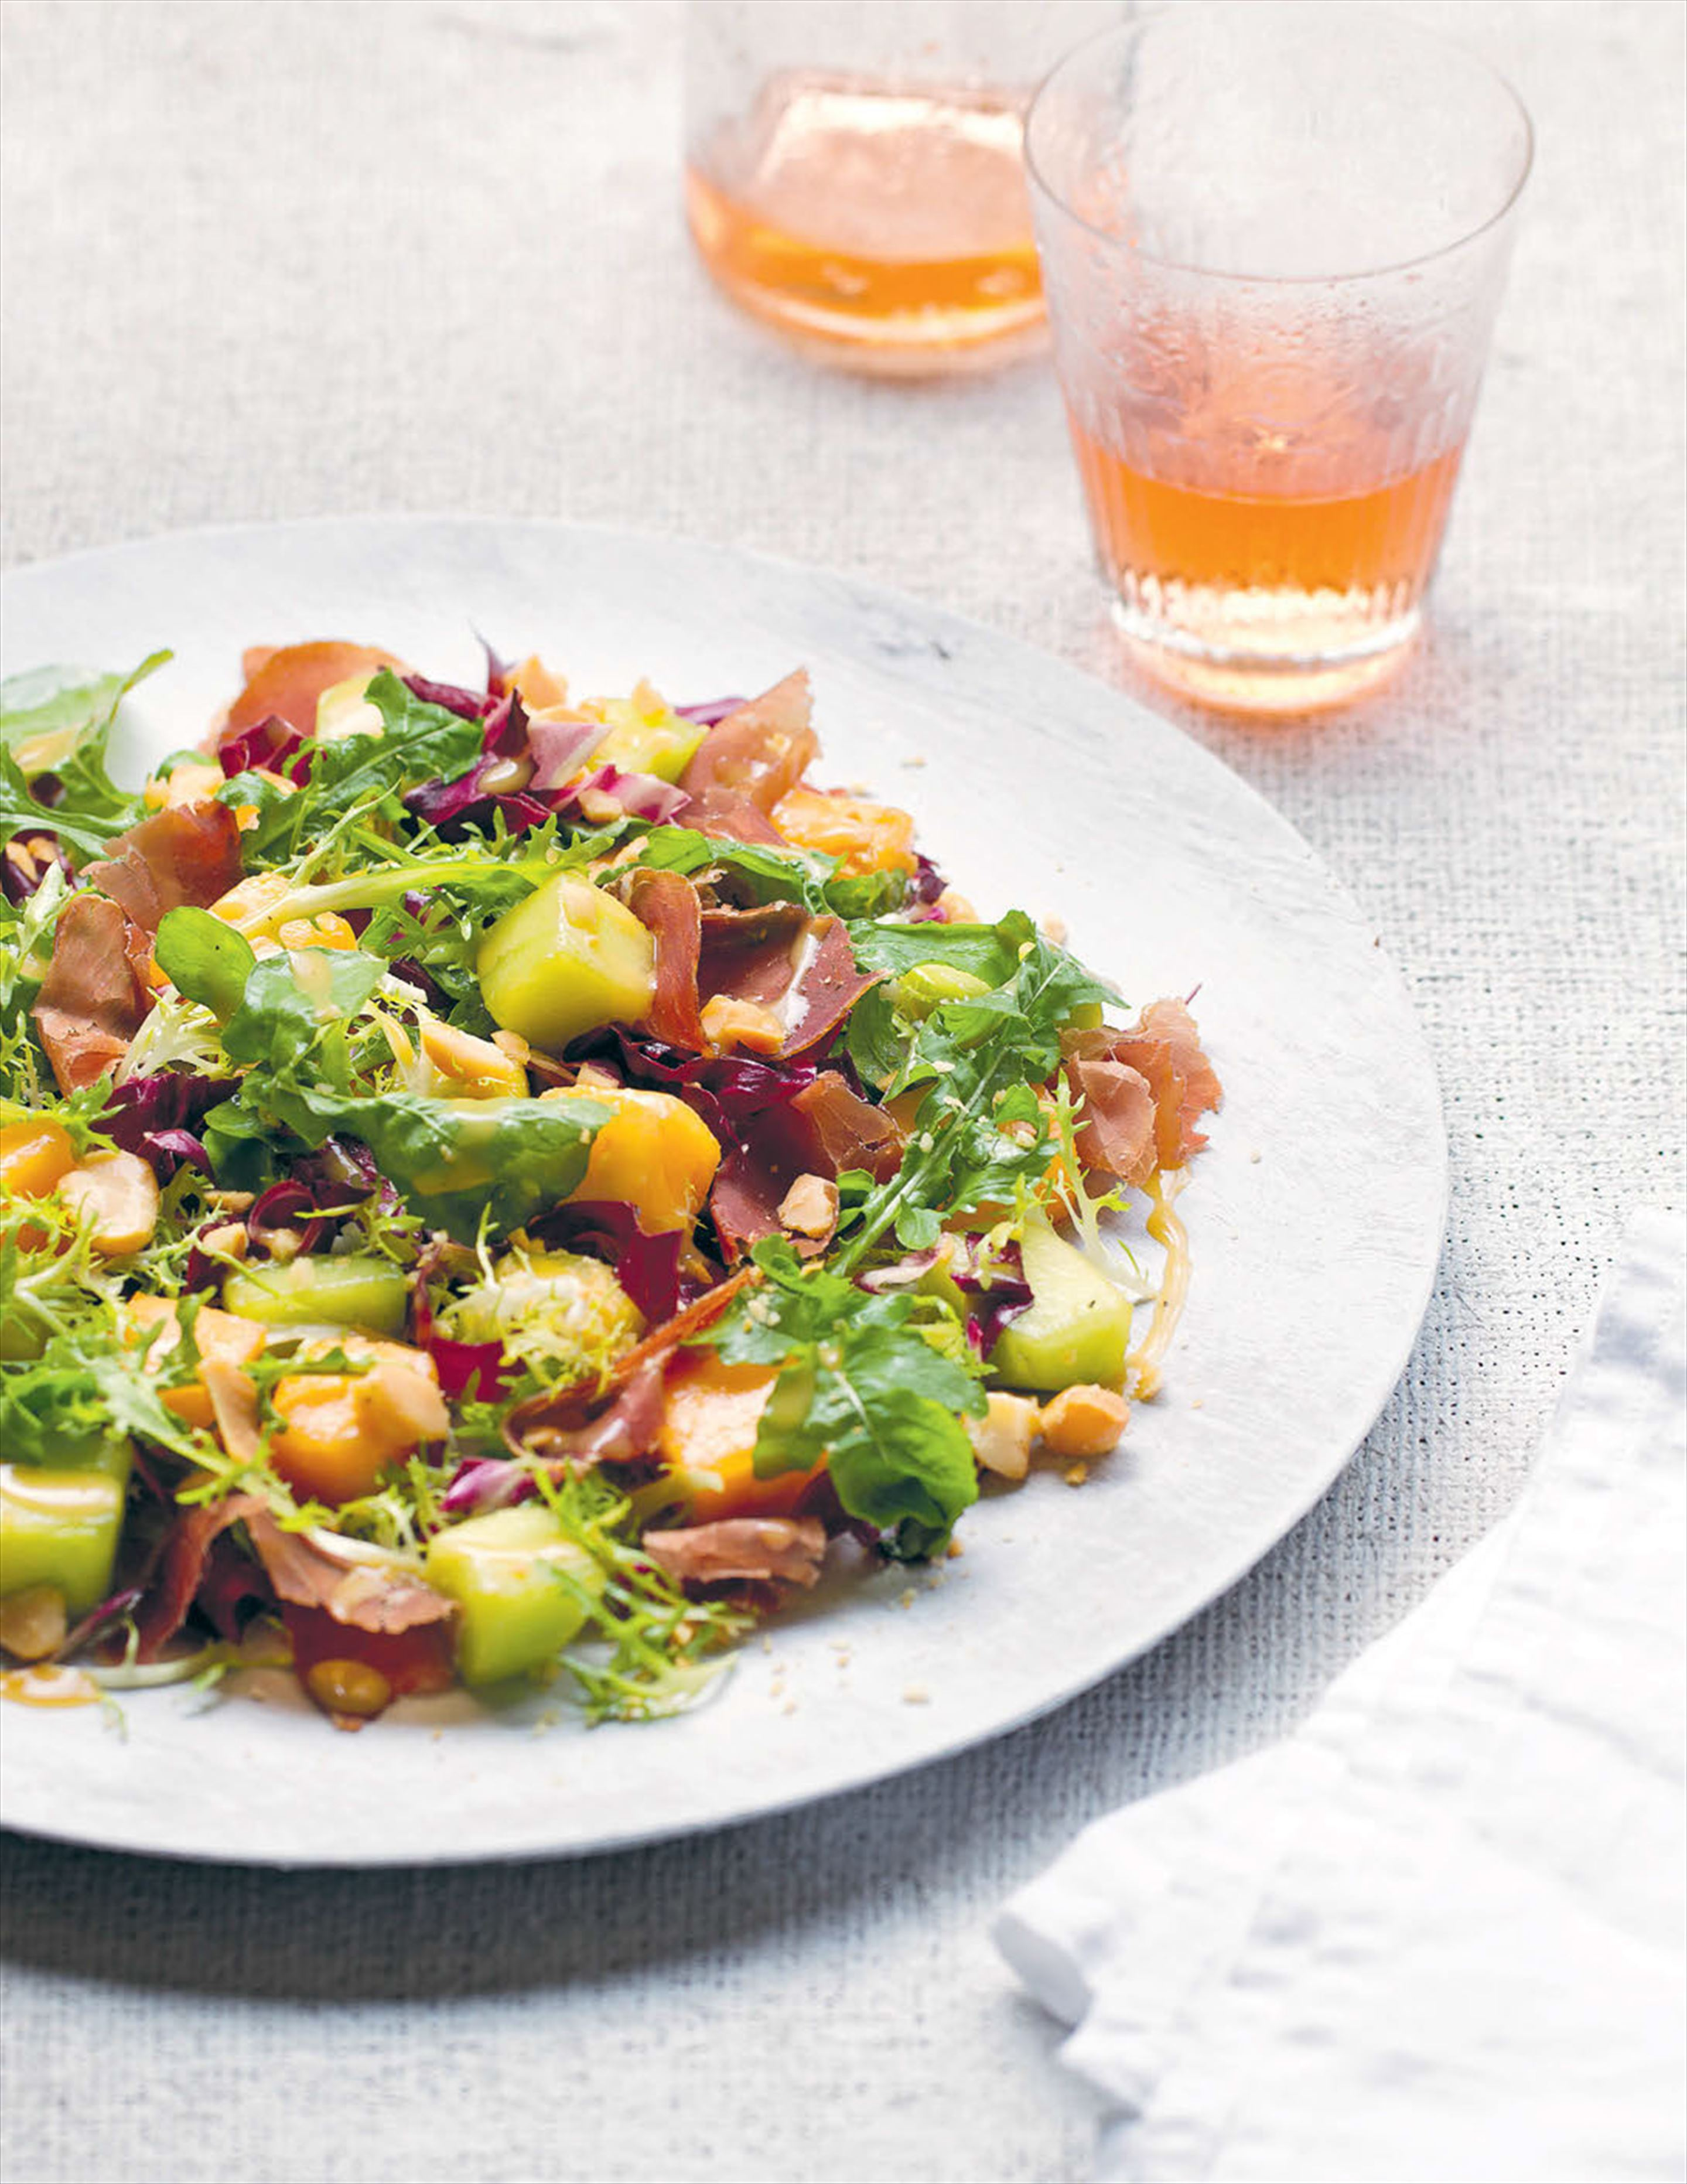 Salad of Parma ham, melon and radicchio